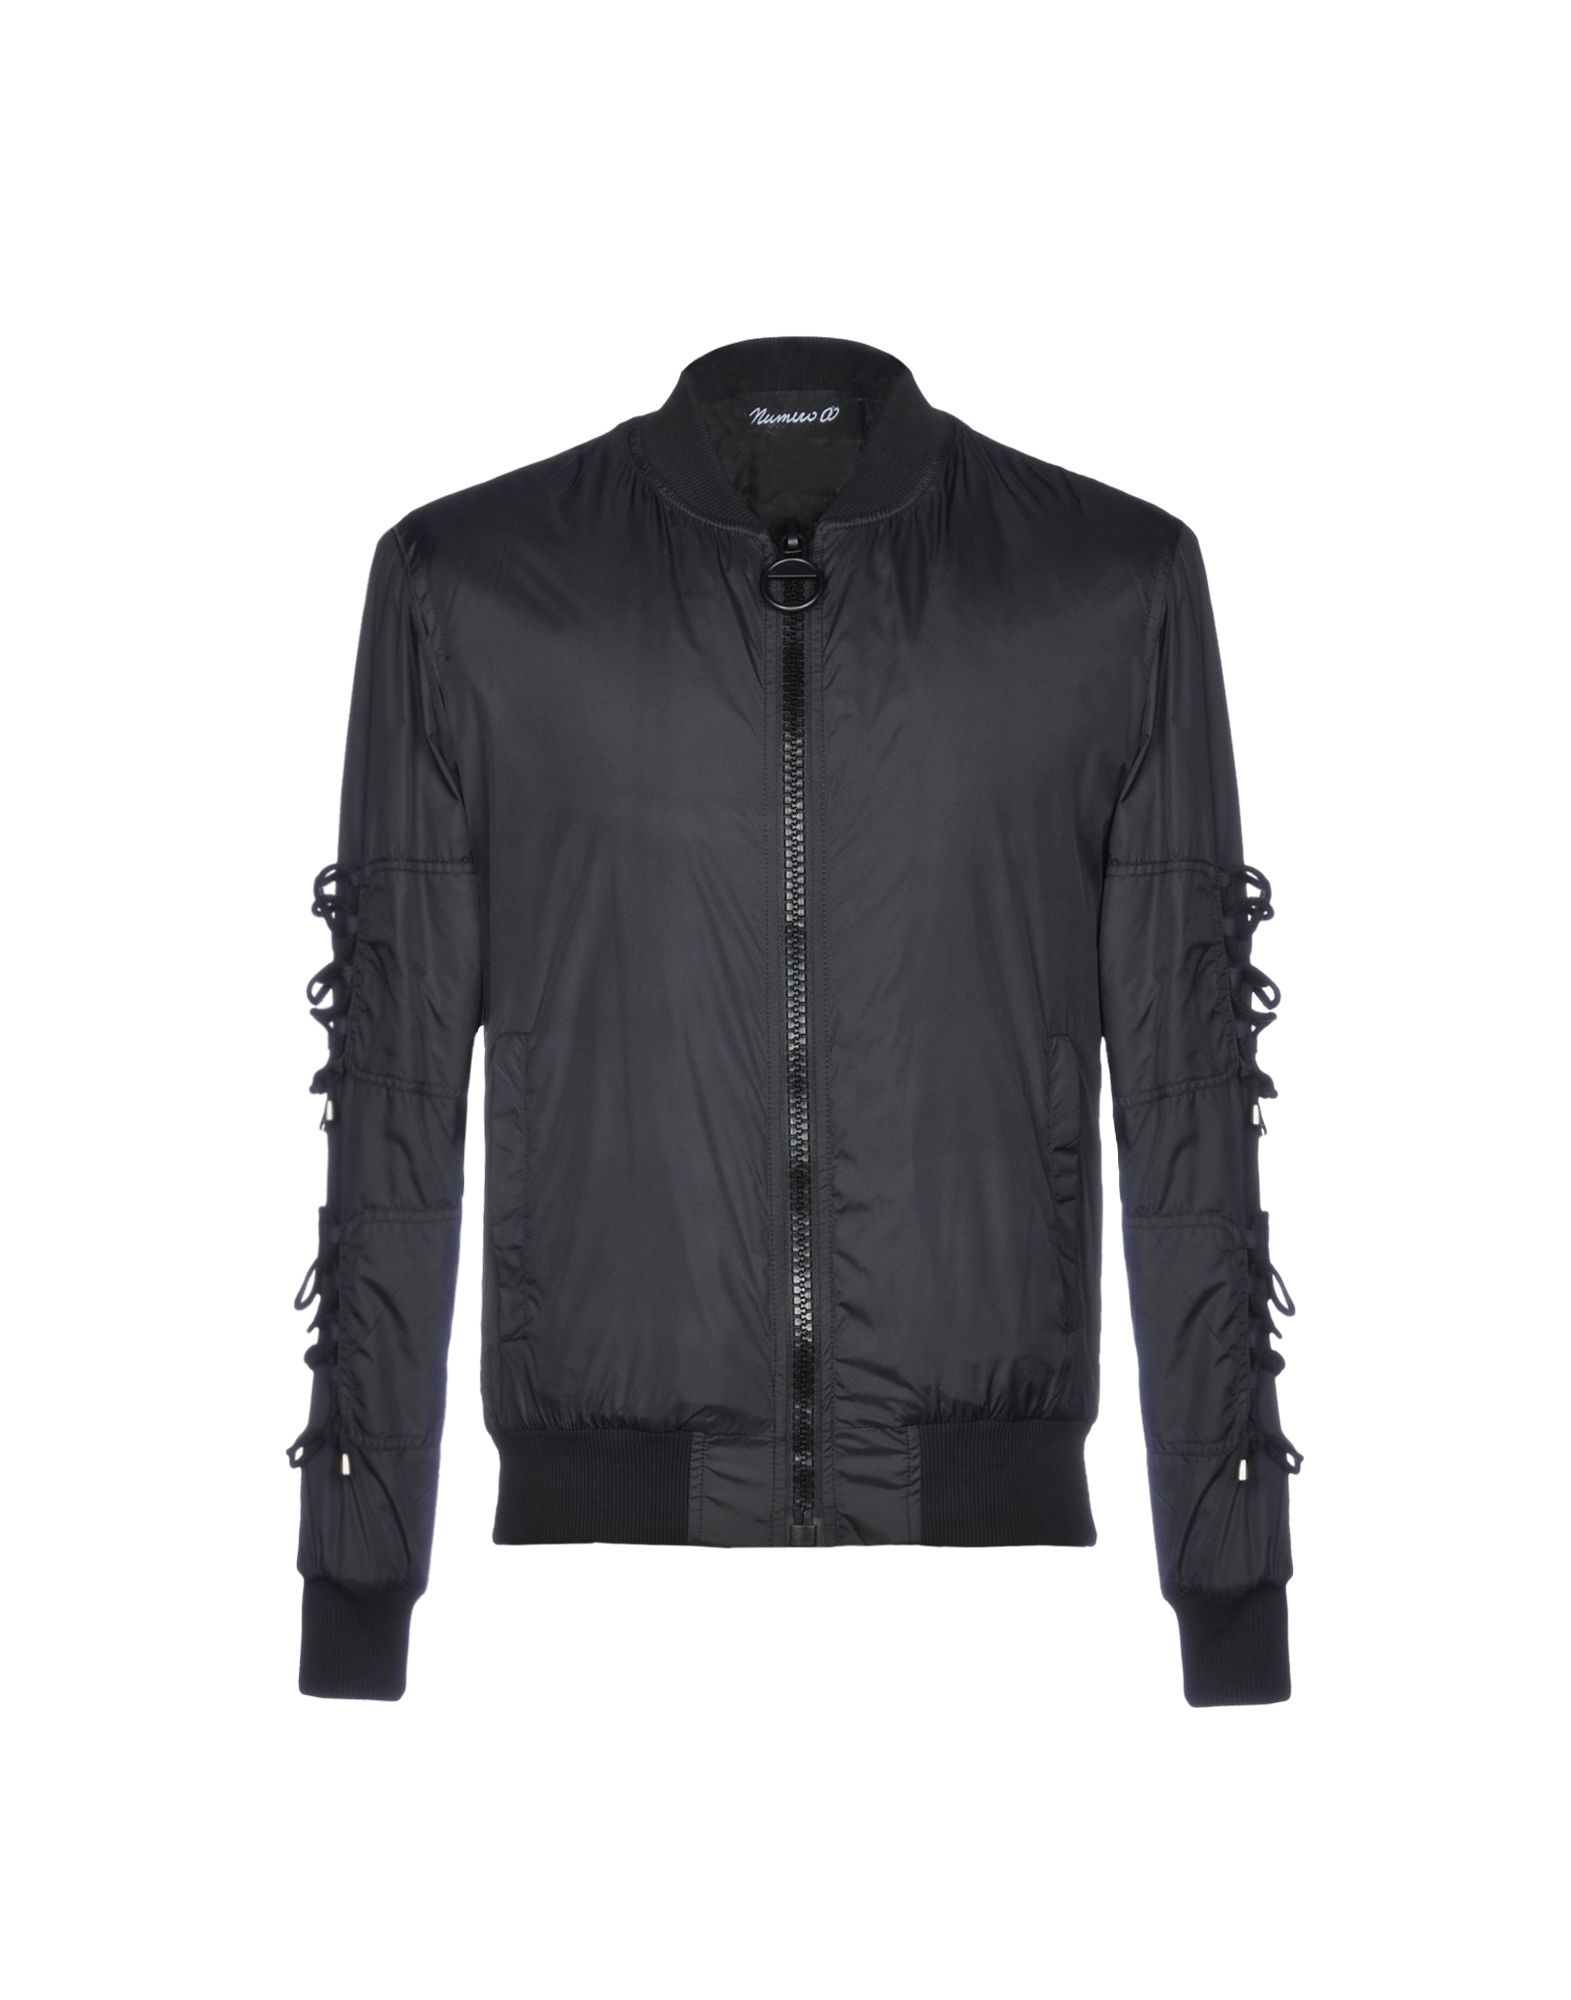 NUMERO00 Bomber in Black